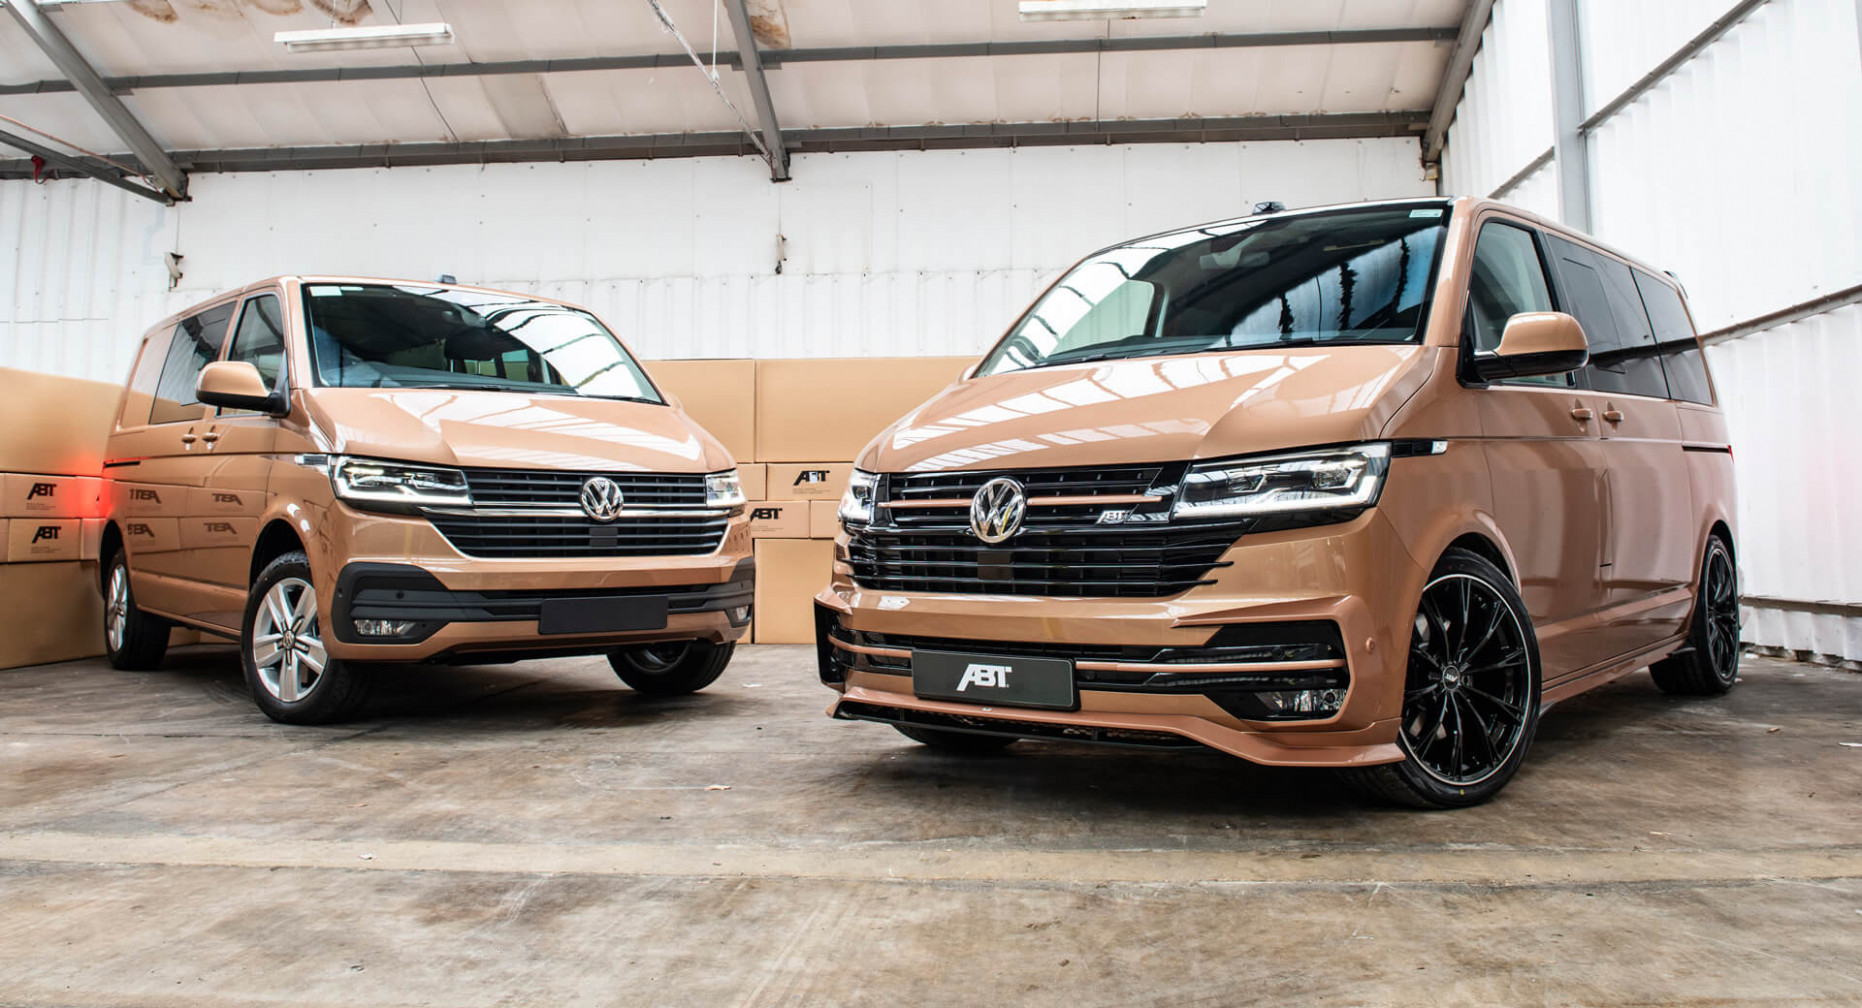 Does 6 VW Transporter Need An Aero Kit And A Power Boost? ABT ..